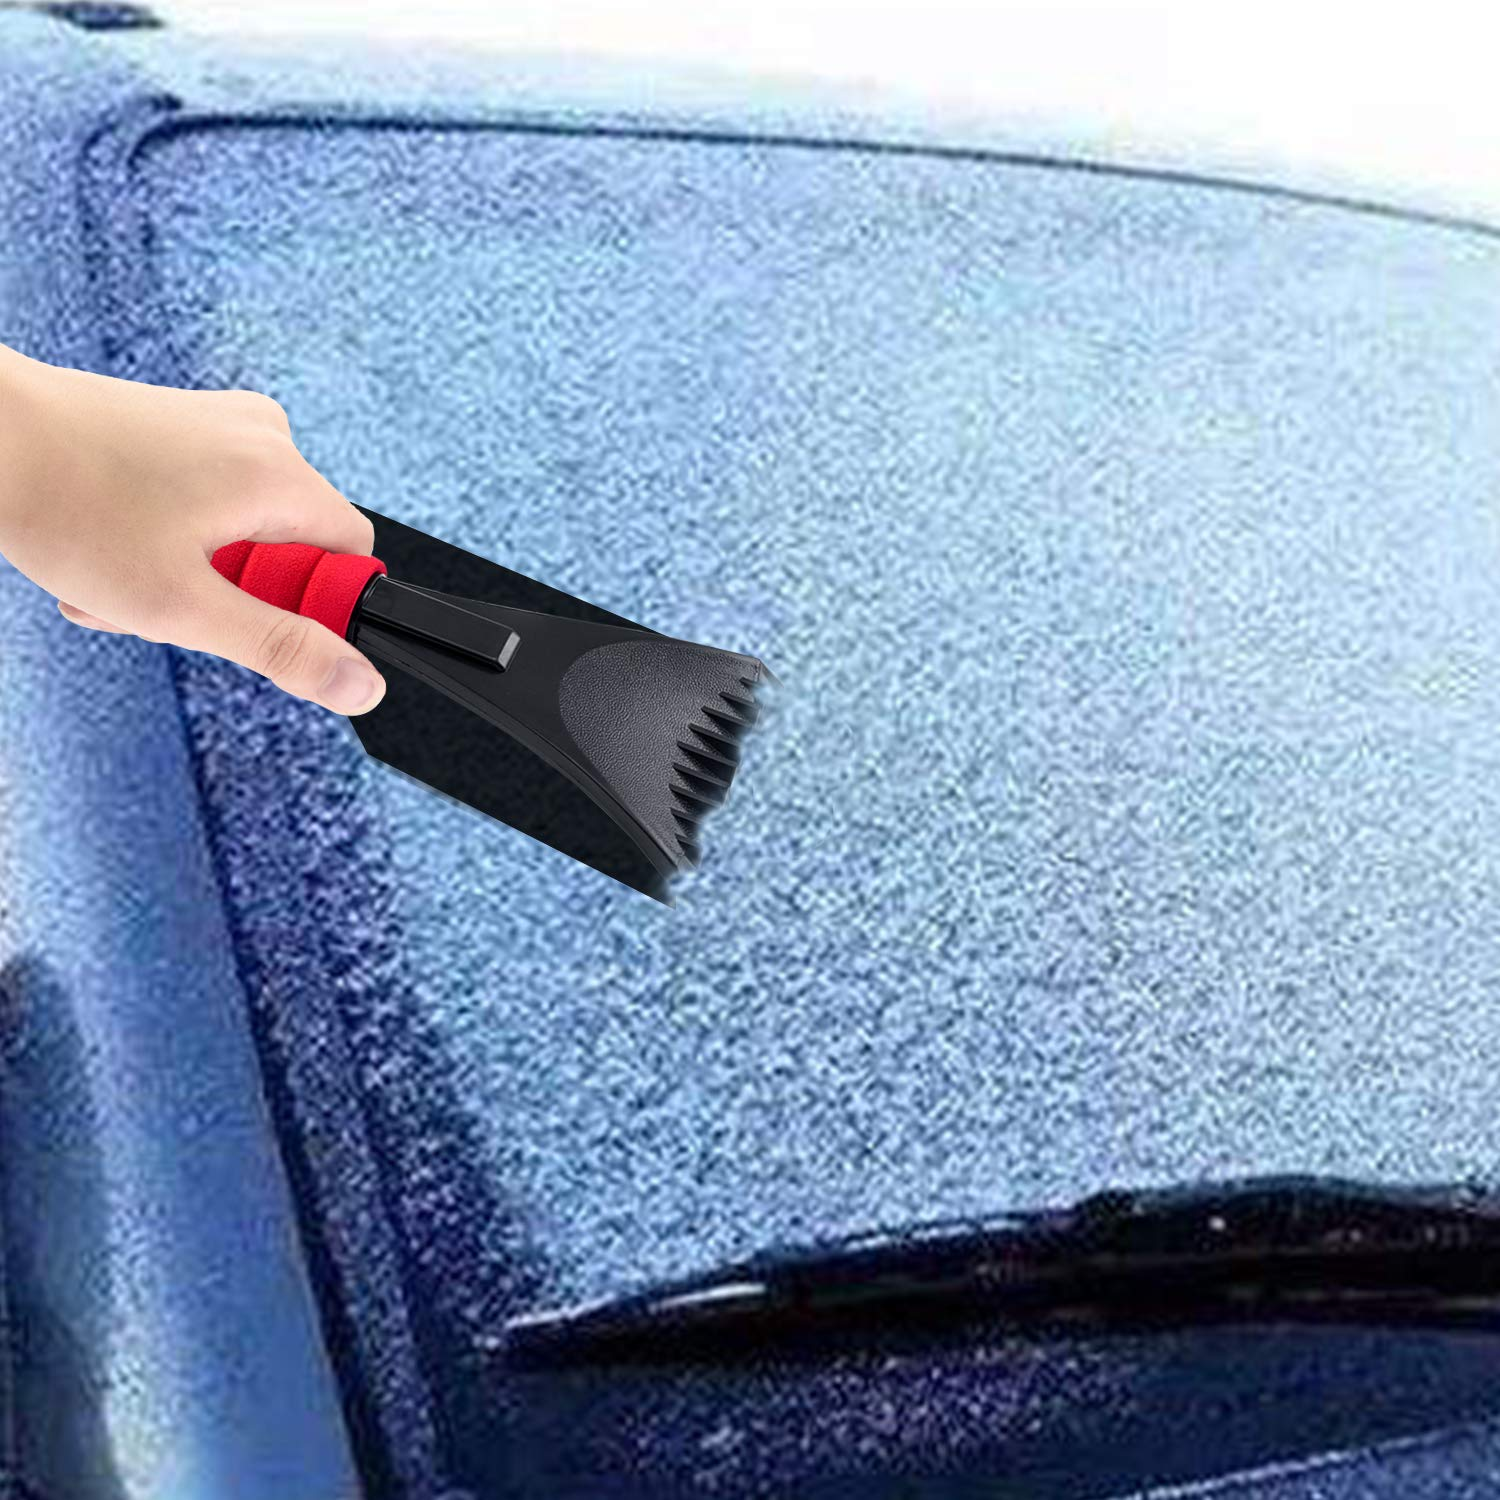 Black 2pcs Red Ansblue Snow Ice Scraper with Foam Handle,Snow Ice Scraper Removal for Car,Snow Scraper Tool for Car Windshield and Window